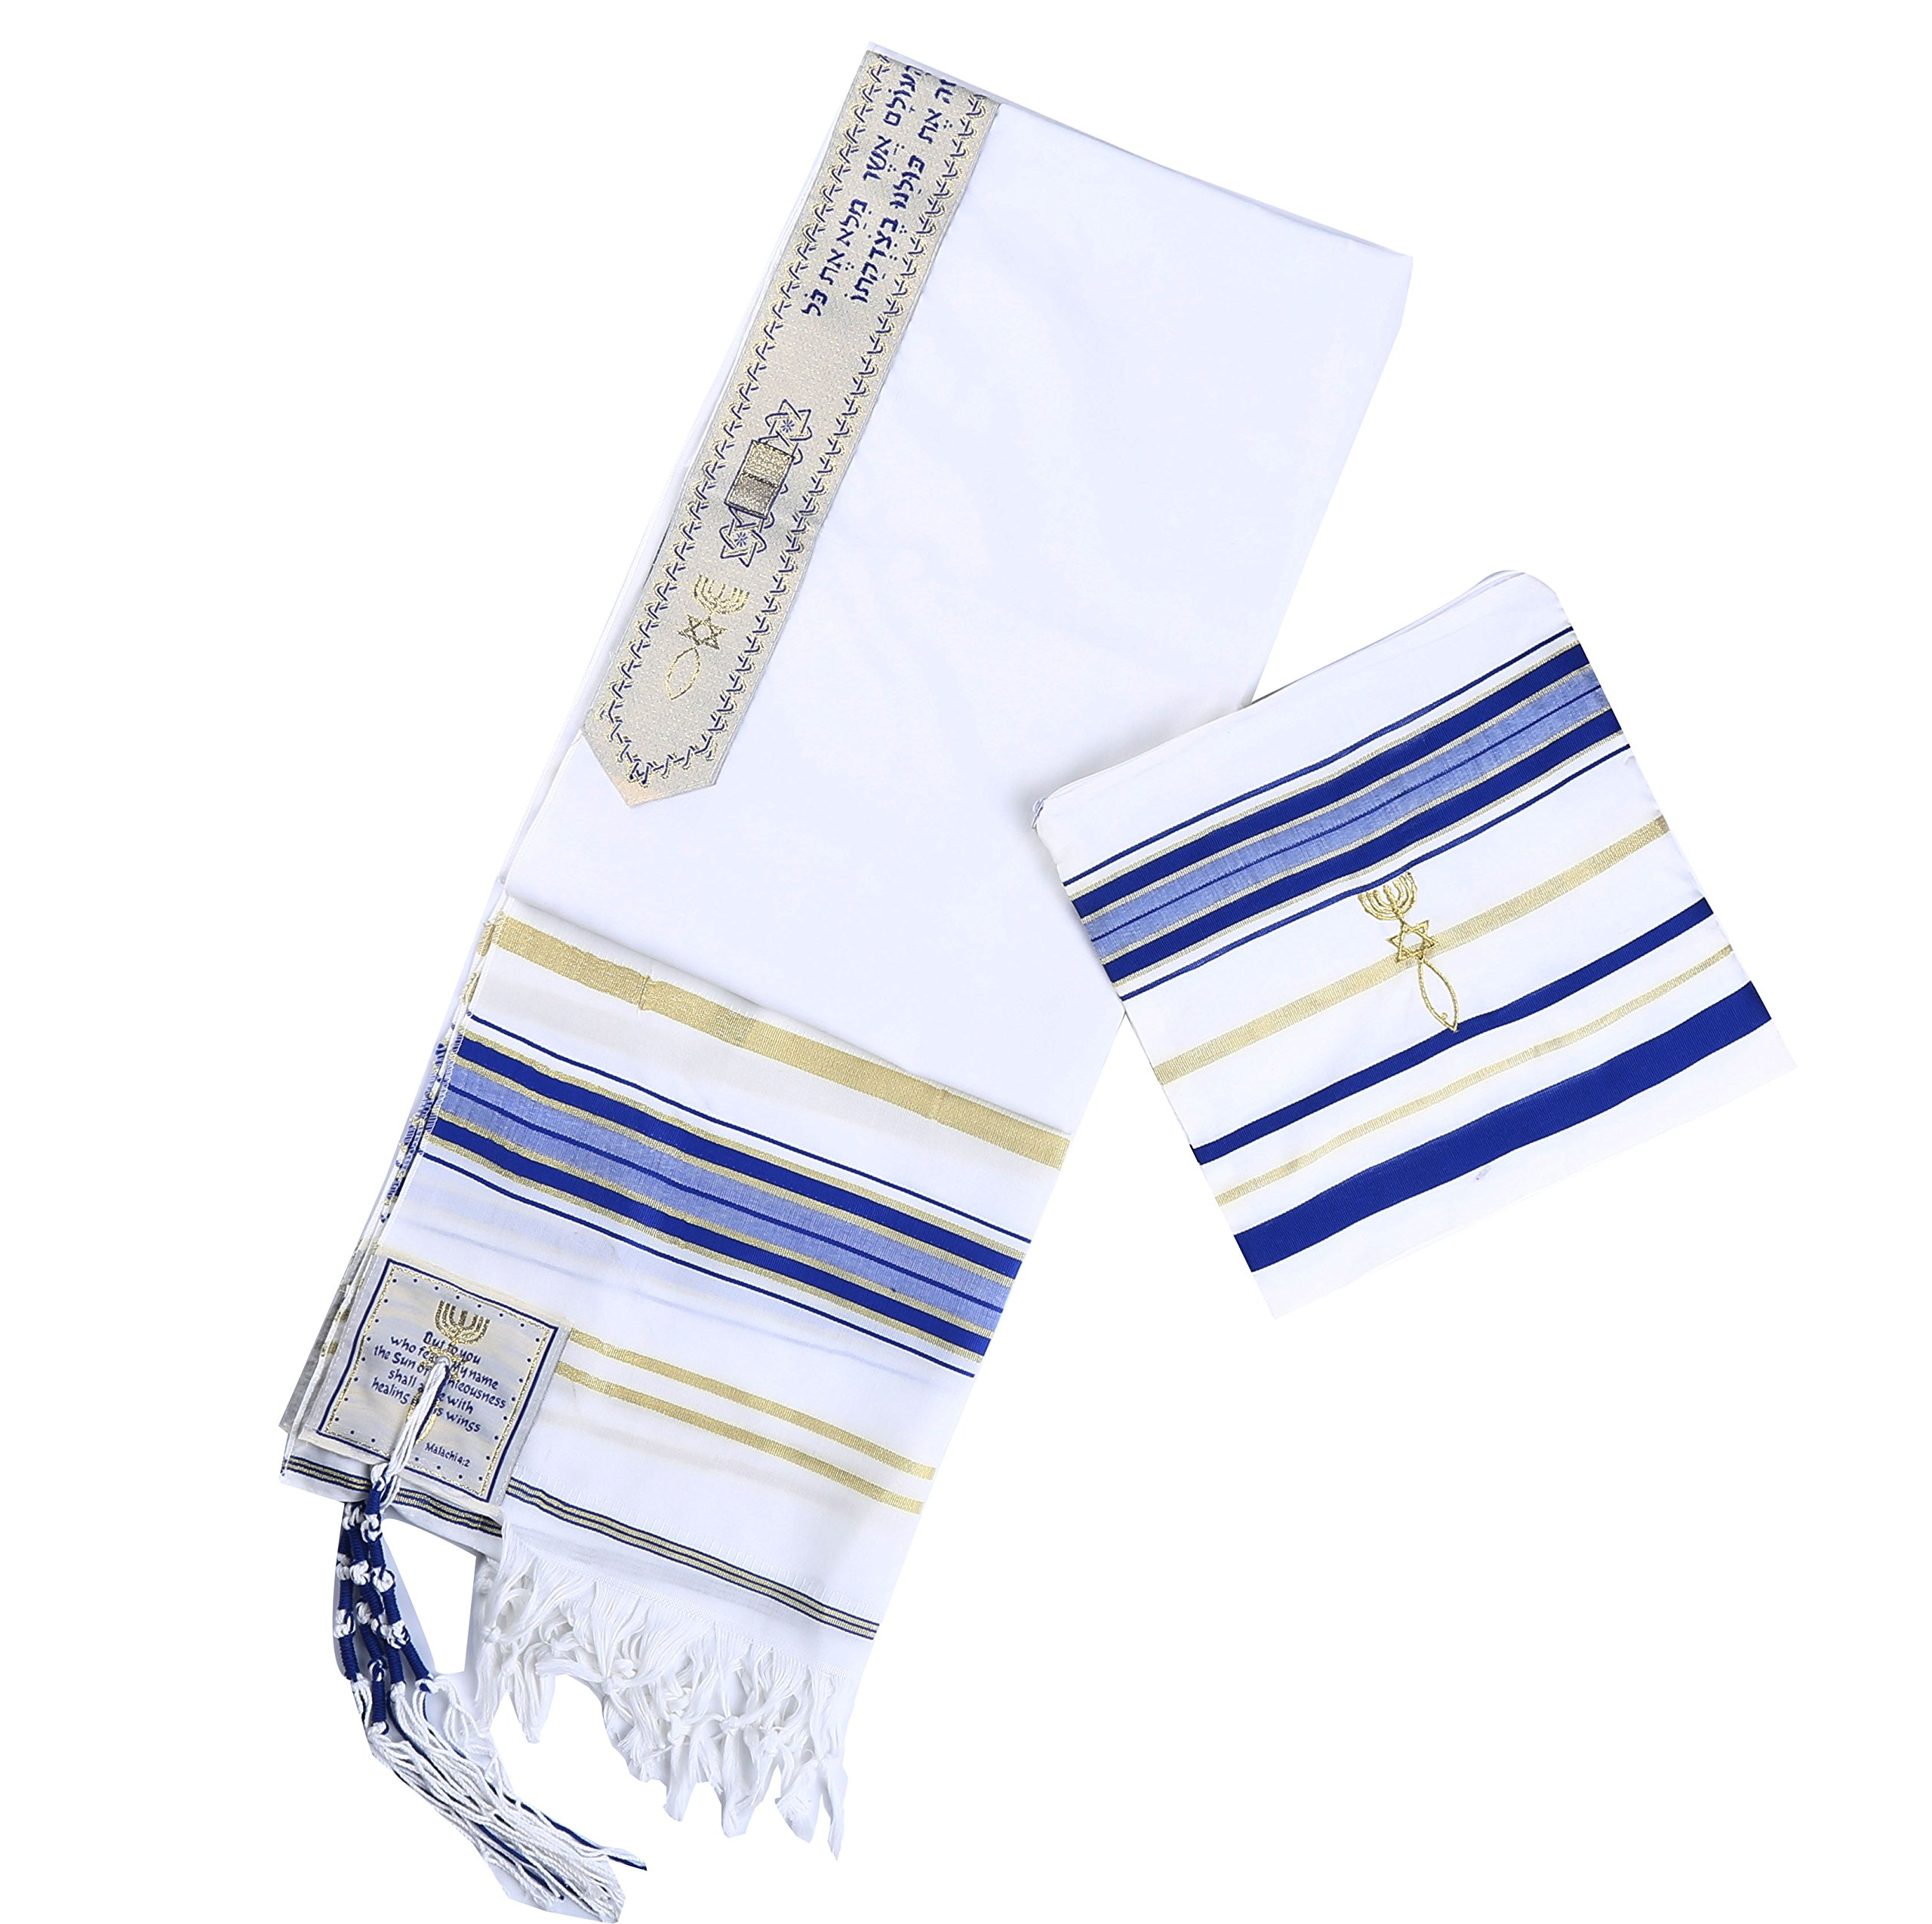 Royal blue Messianic Tallit Prayer Shawl 72'' X 22'' with Matching bag by Star Gifts